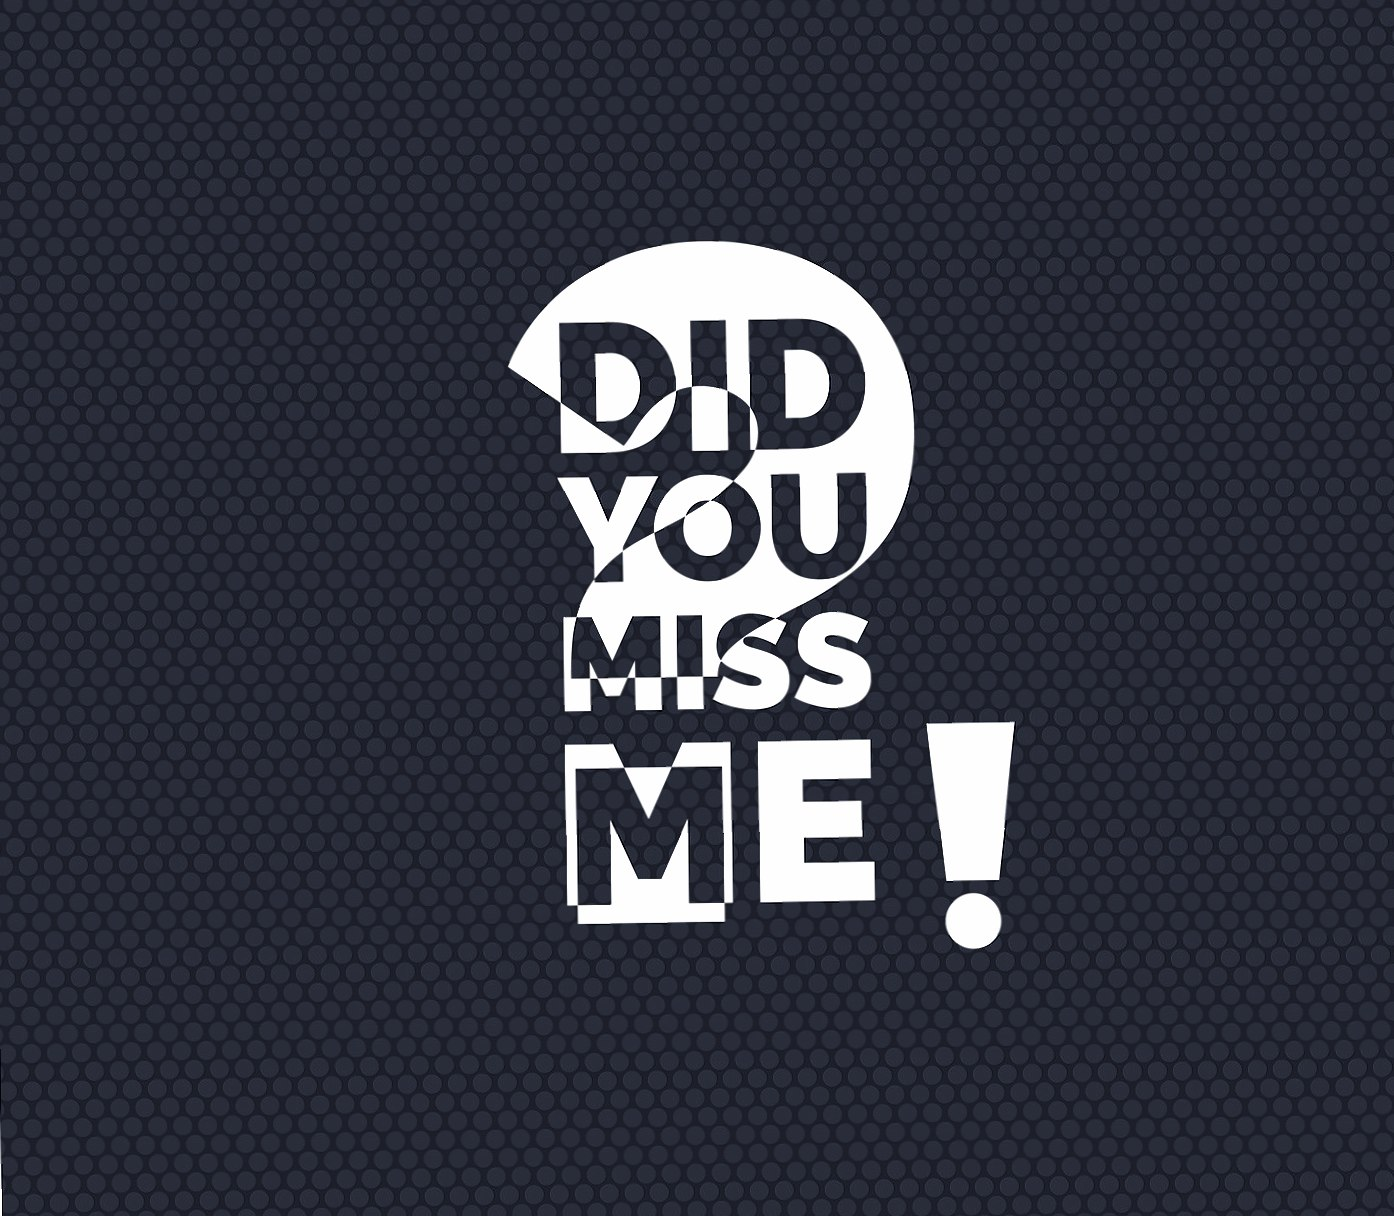 Did you miss me wallpapers HD quality